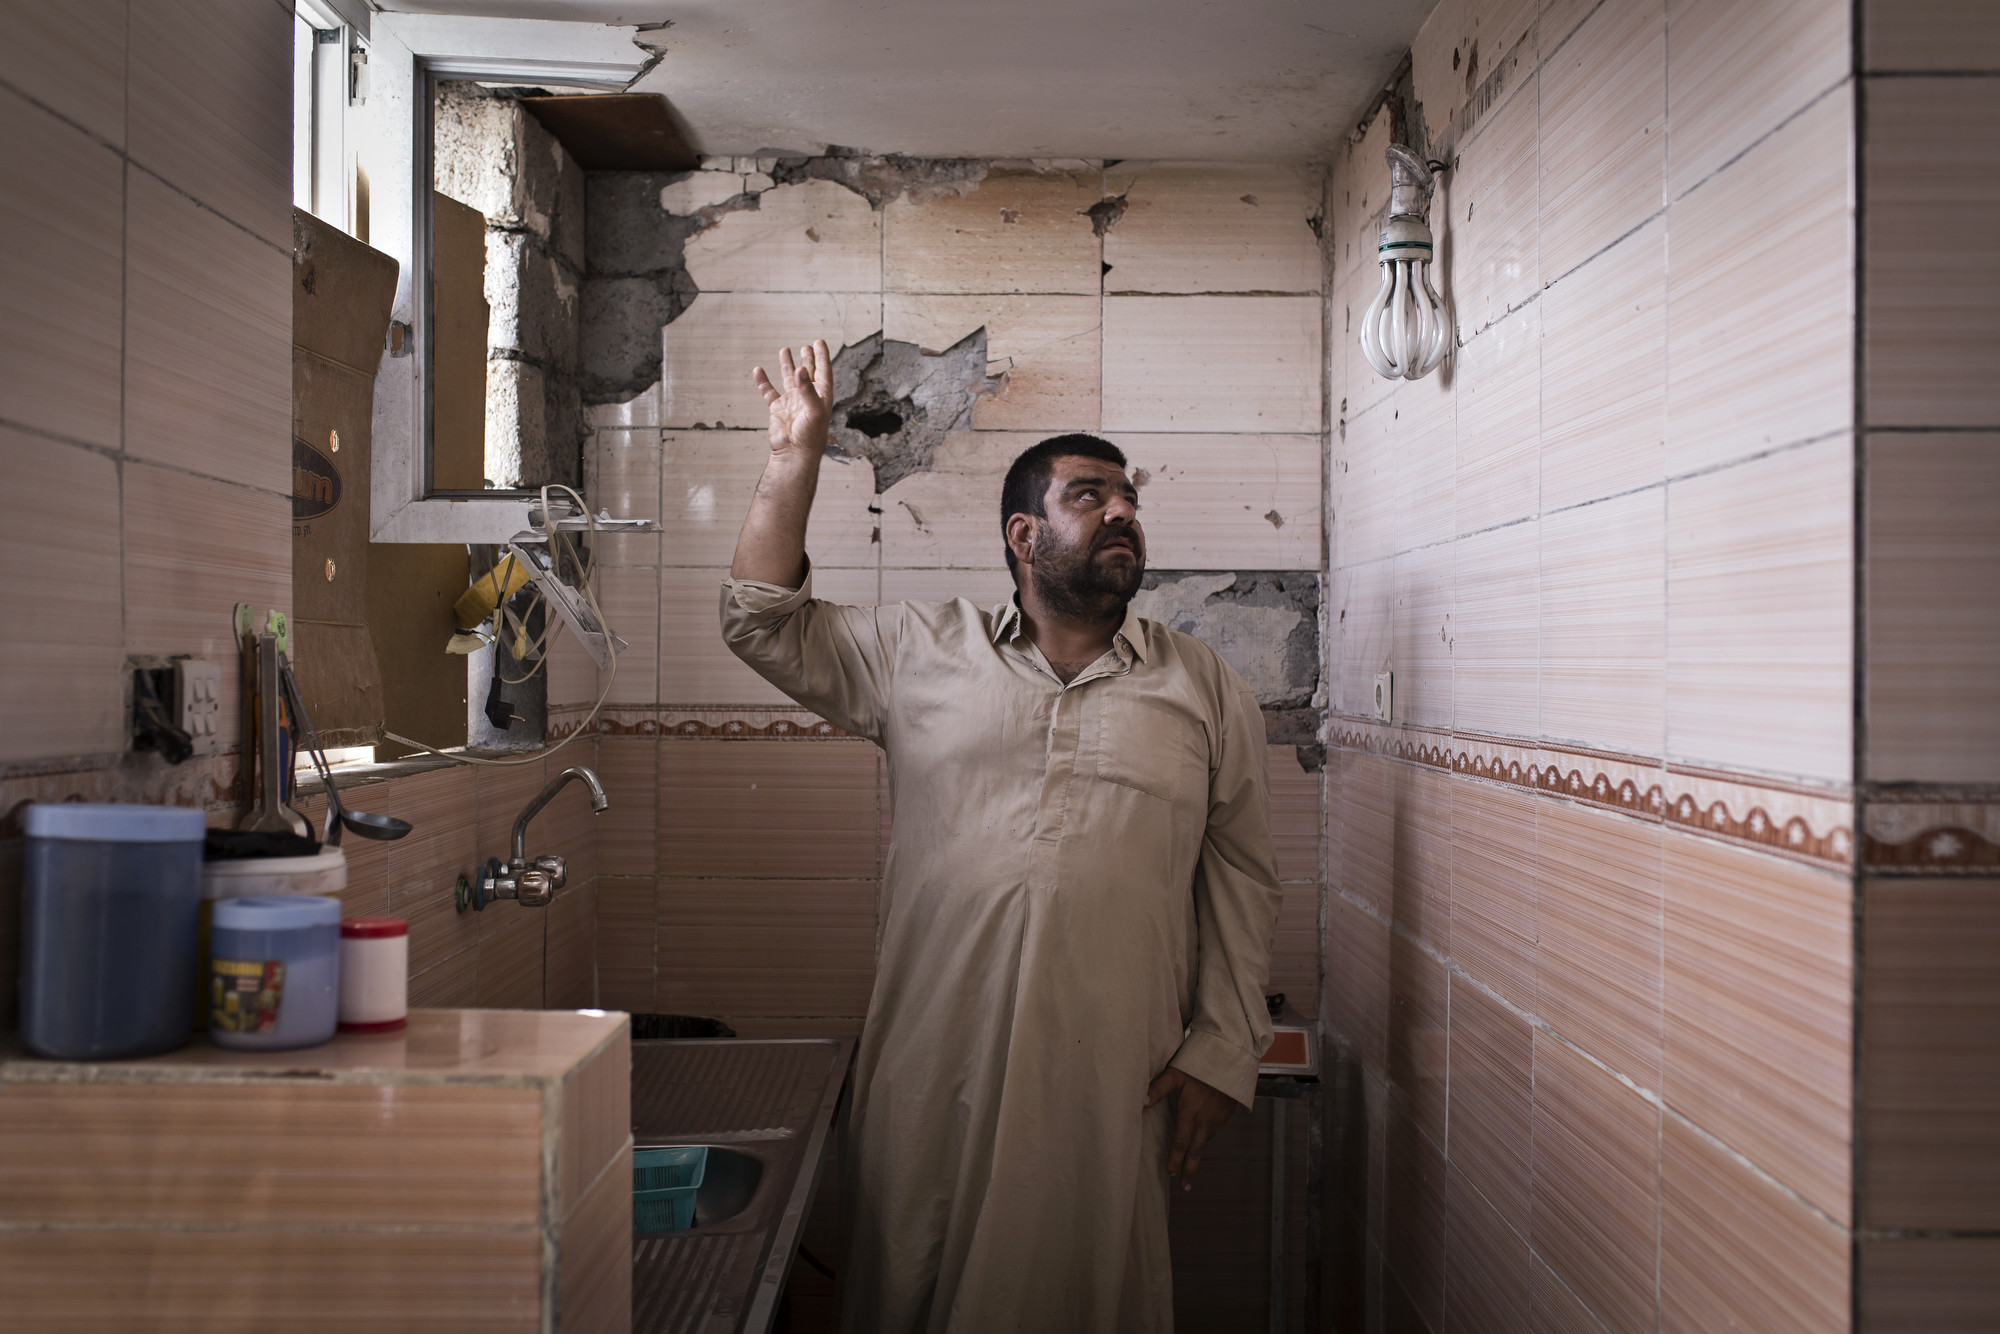 A Turkman resident shows damage inside his home which was allegedly hit by fire from a Kurdish tank.